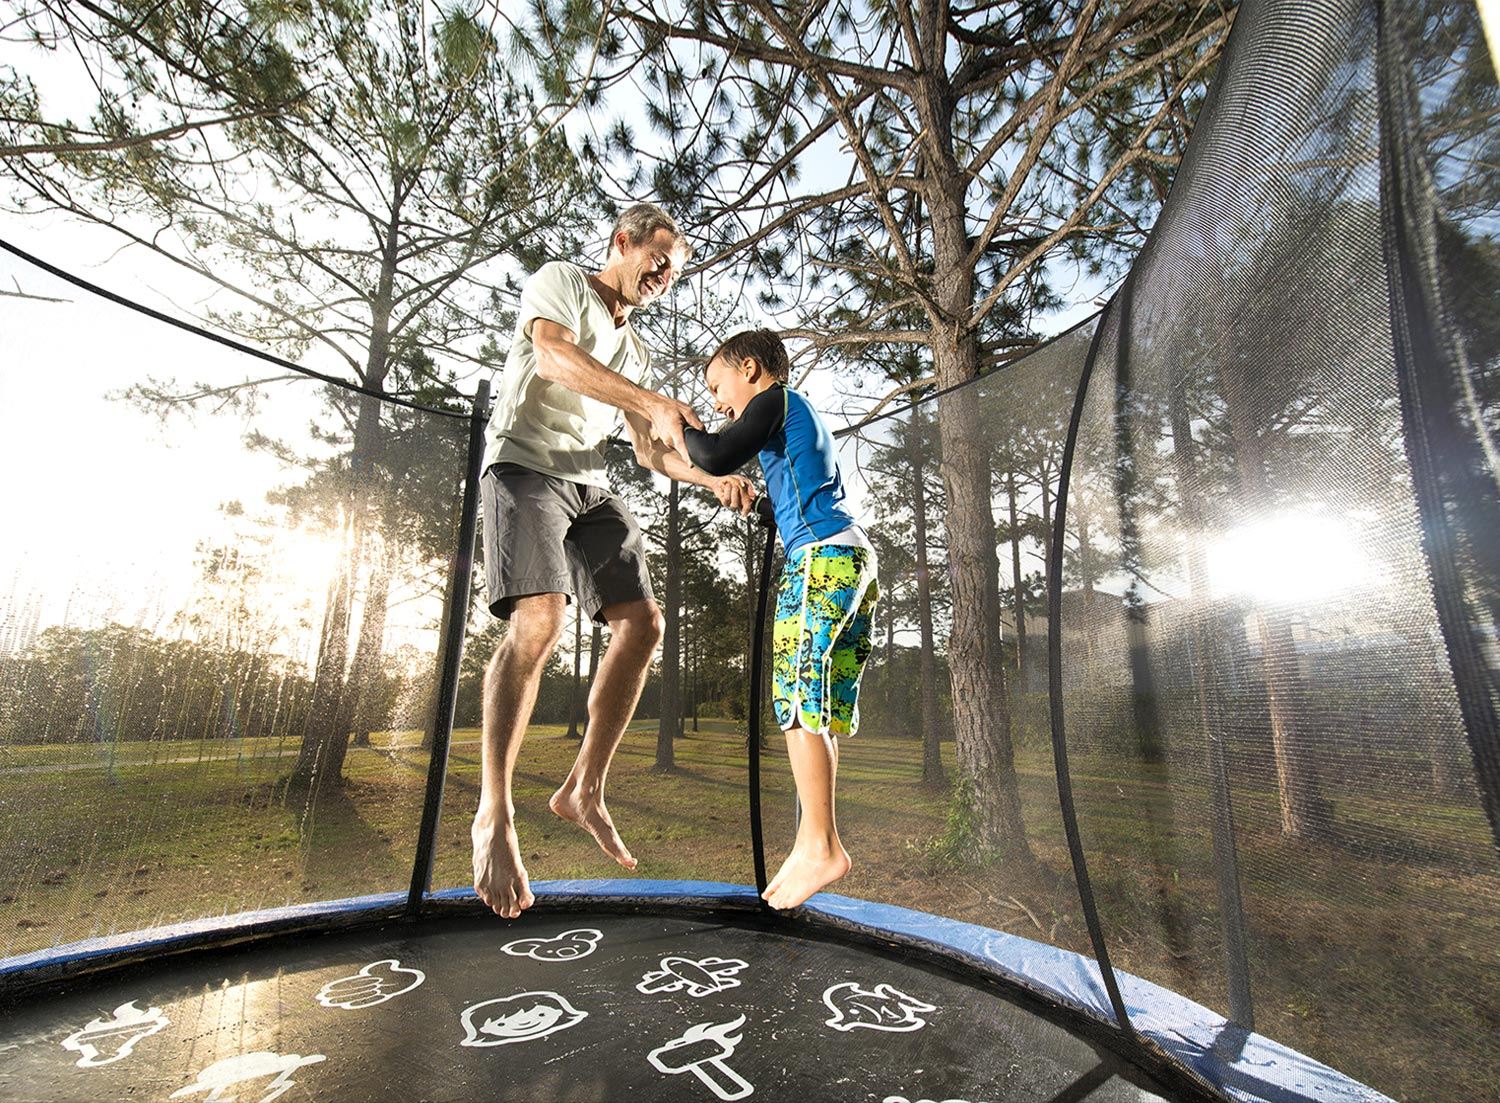 Vuly Mister - The only way to stay cool on your Vuly trampoline.